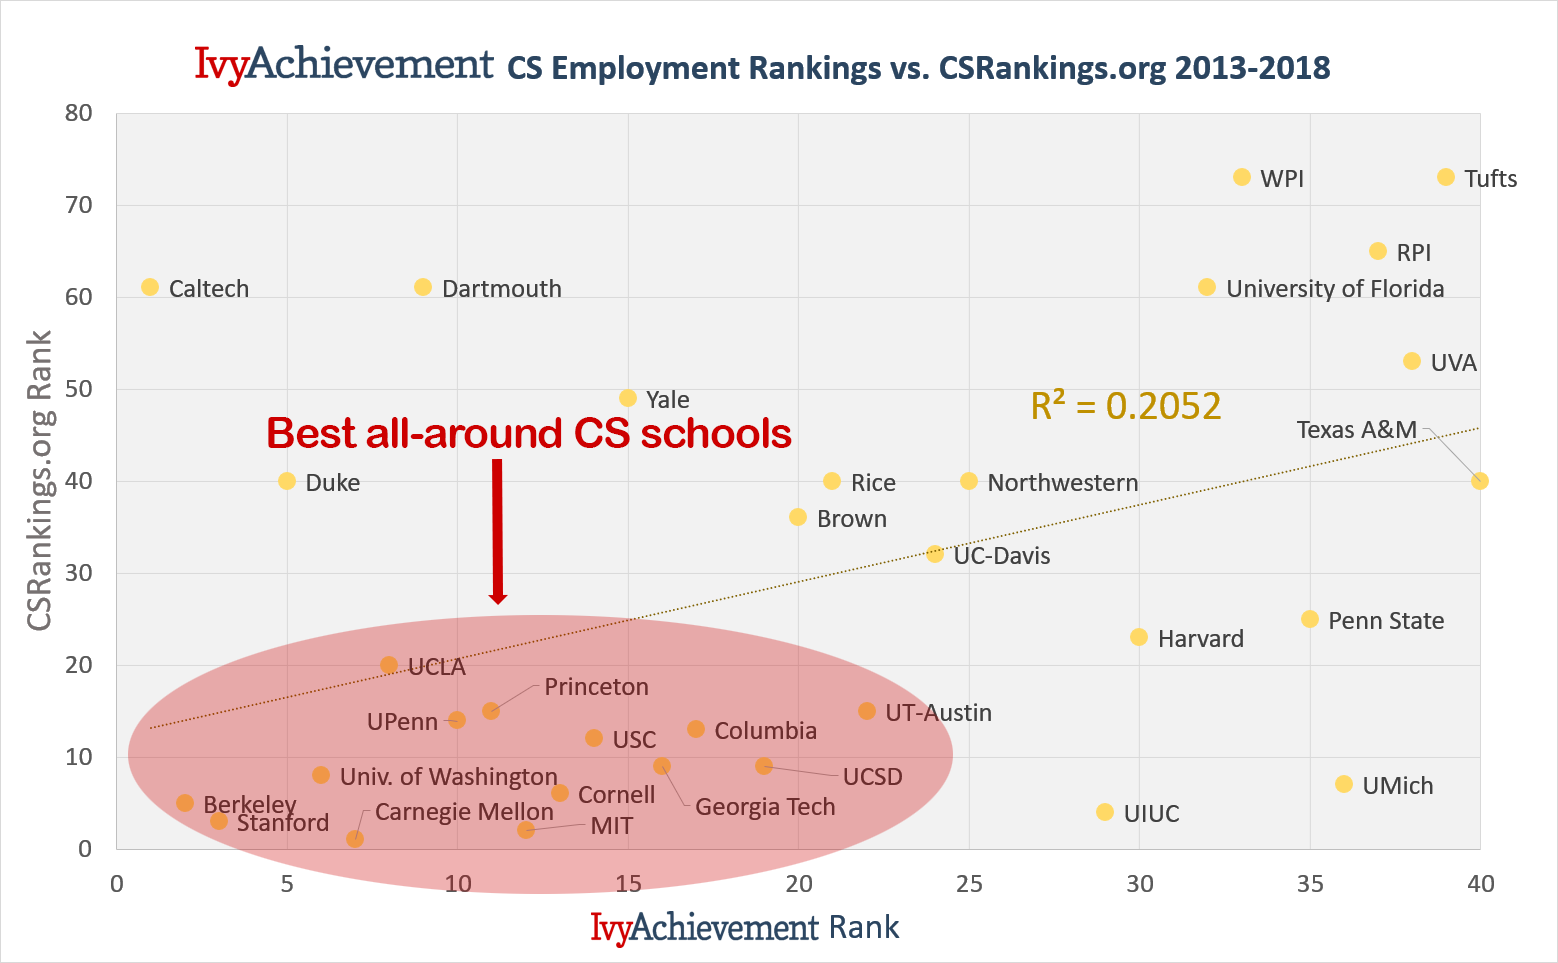 IvyAchievement computer science employment index vs CSRankings - best schools